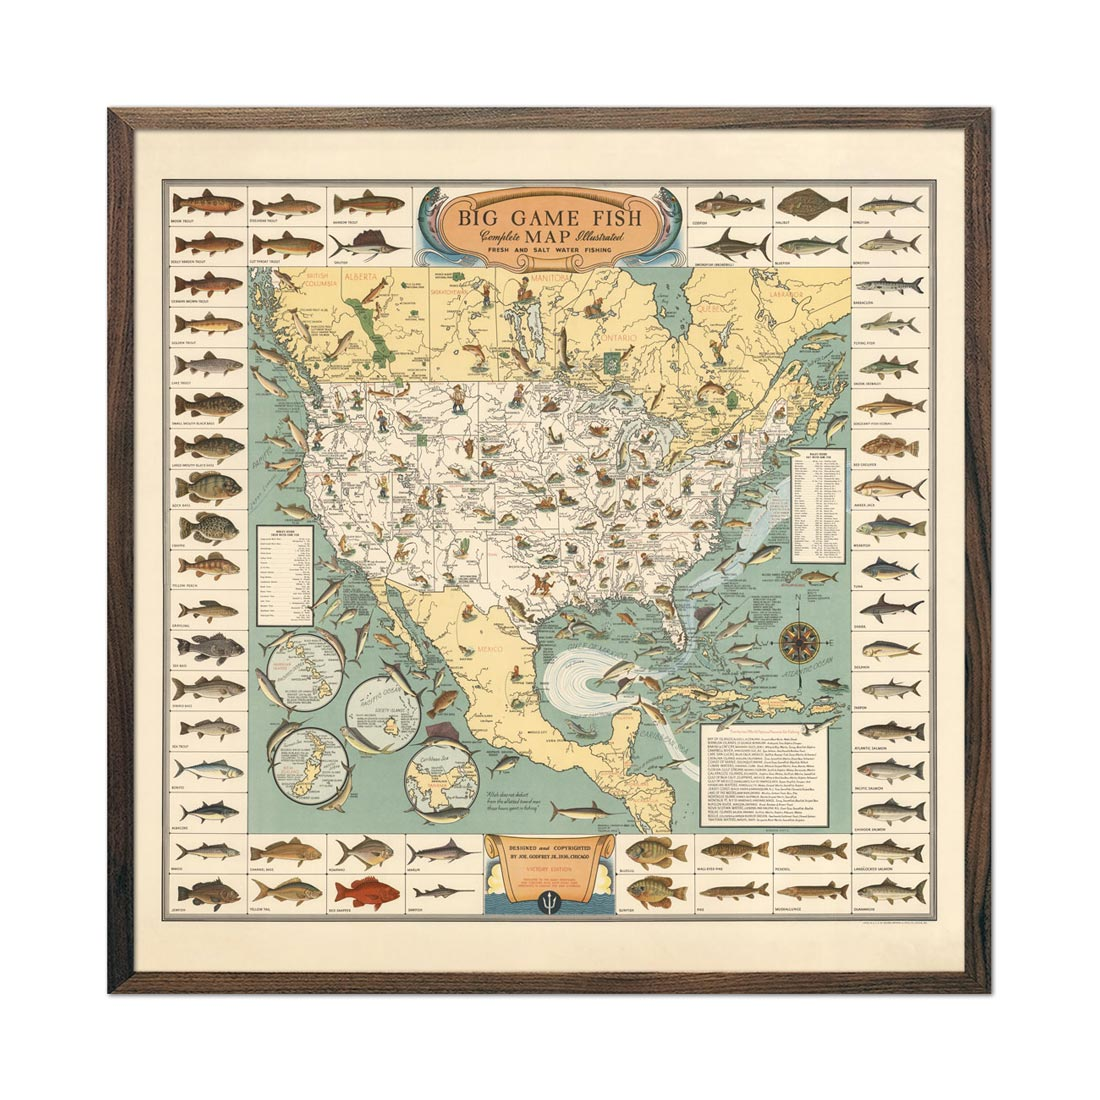 Vintage Big Game Fish Map - 1936